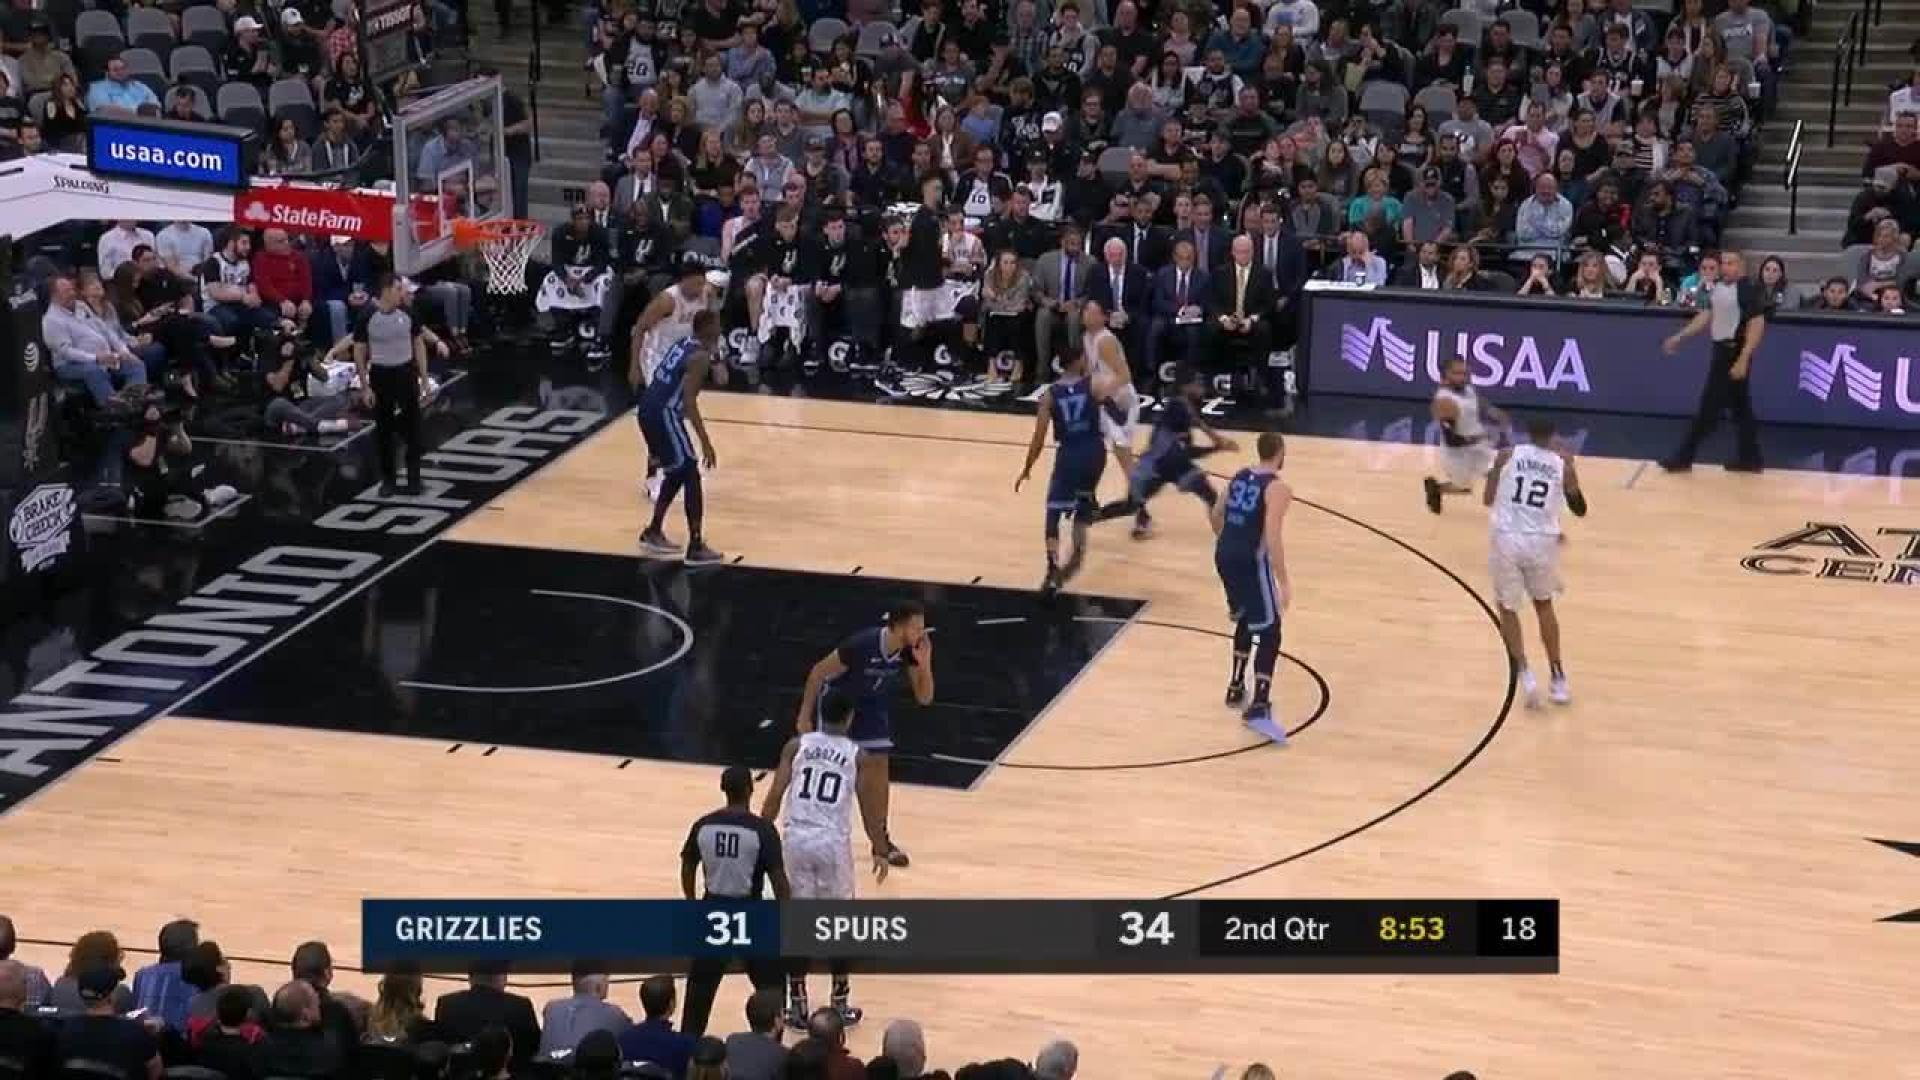 Dunk By Demar Derozan In The Second Quarter